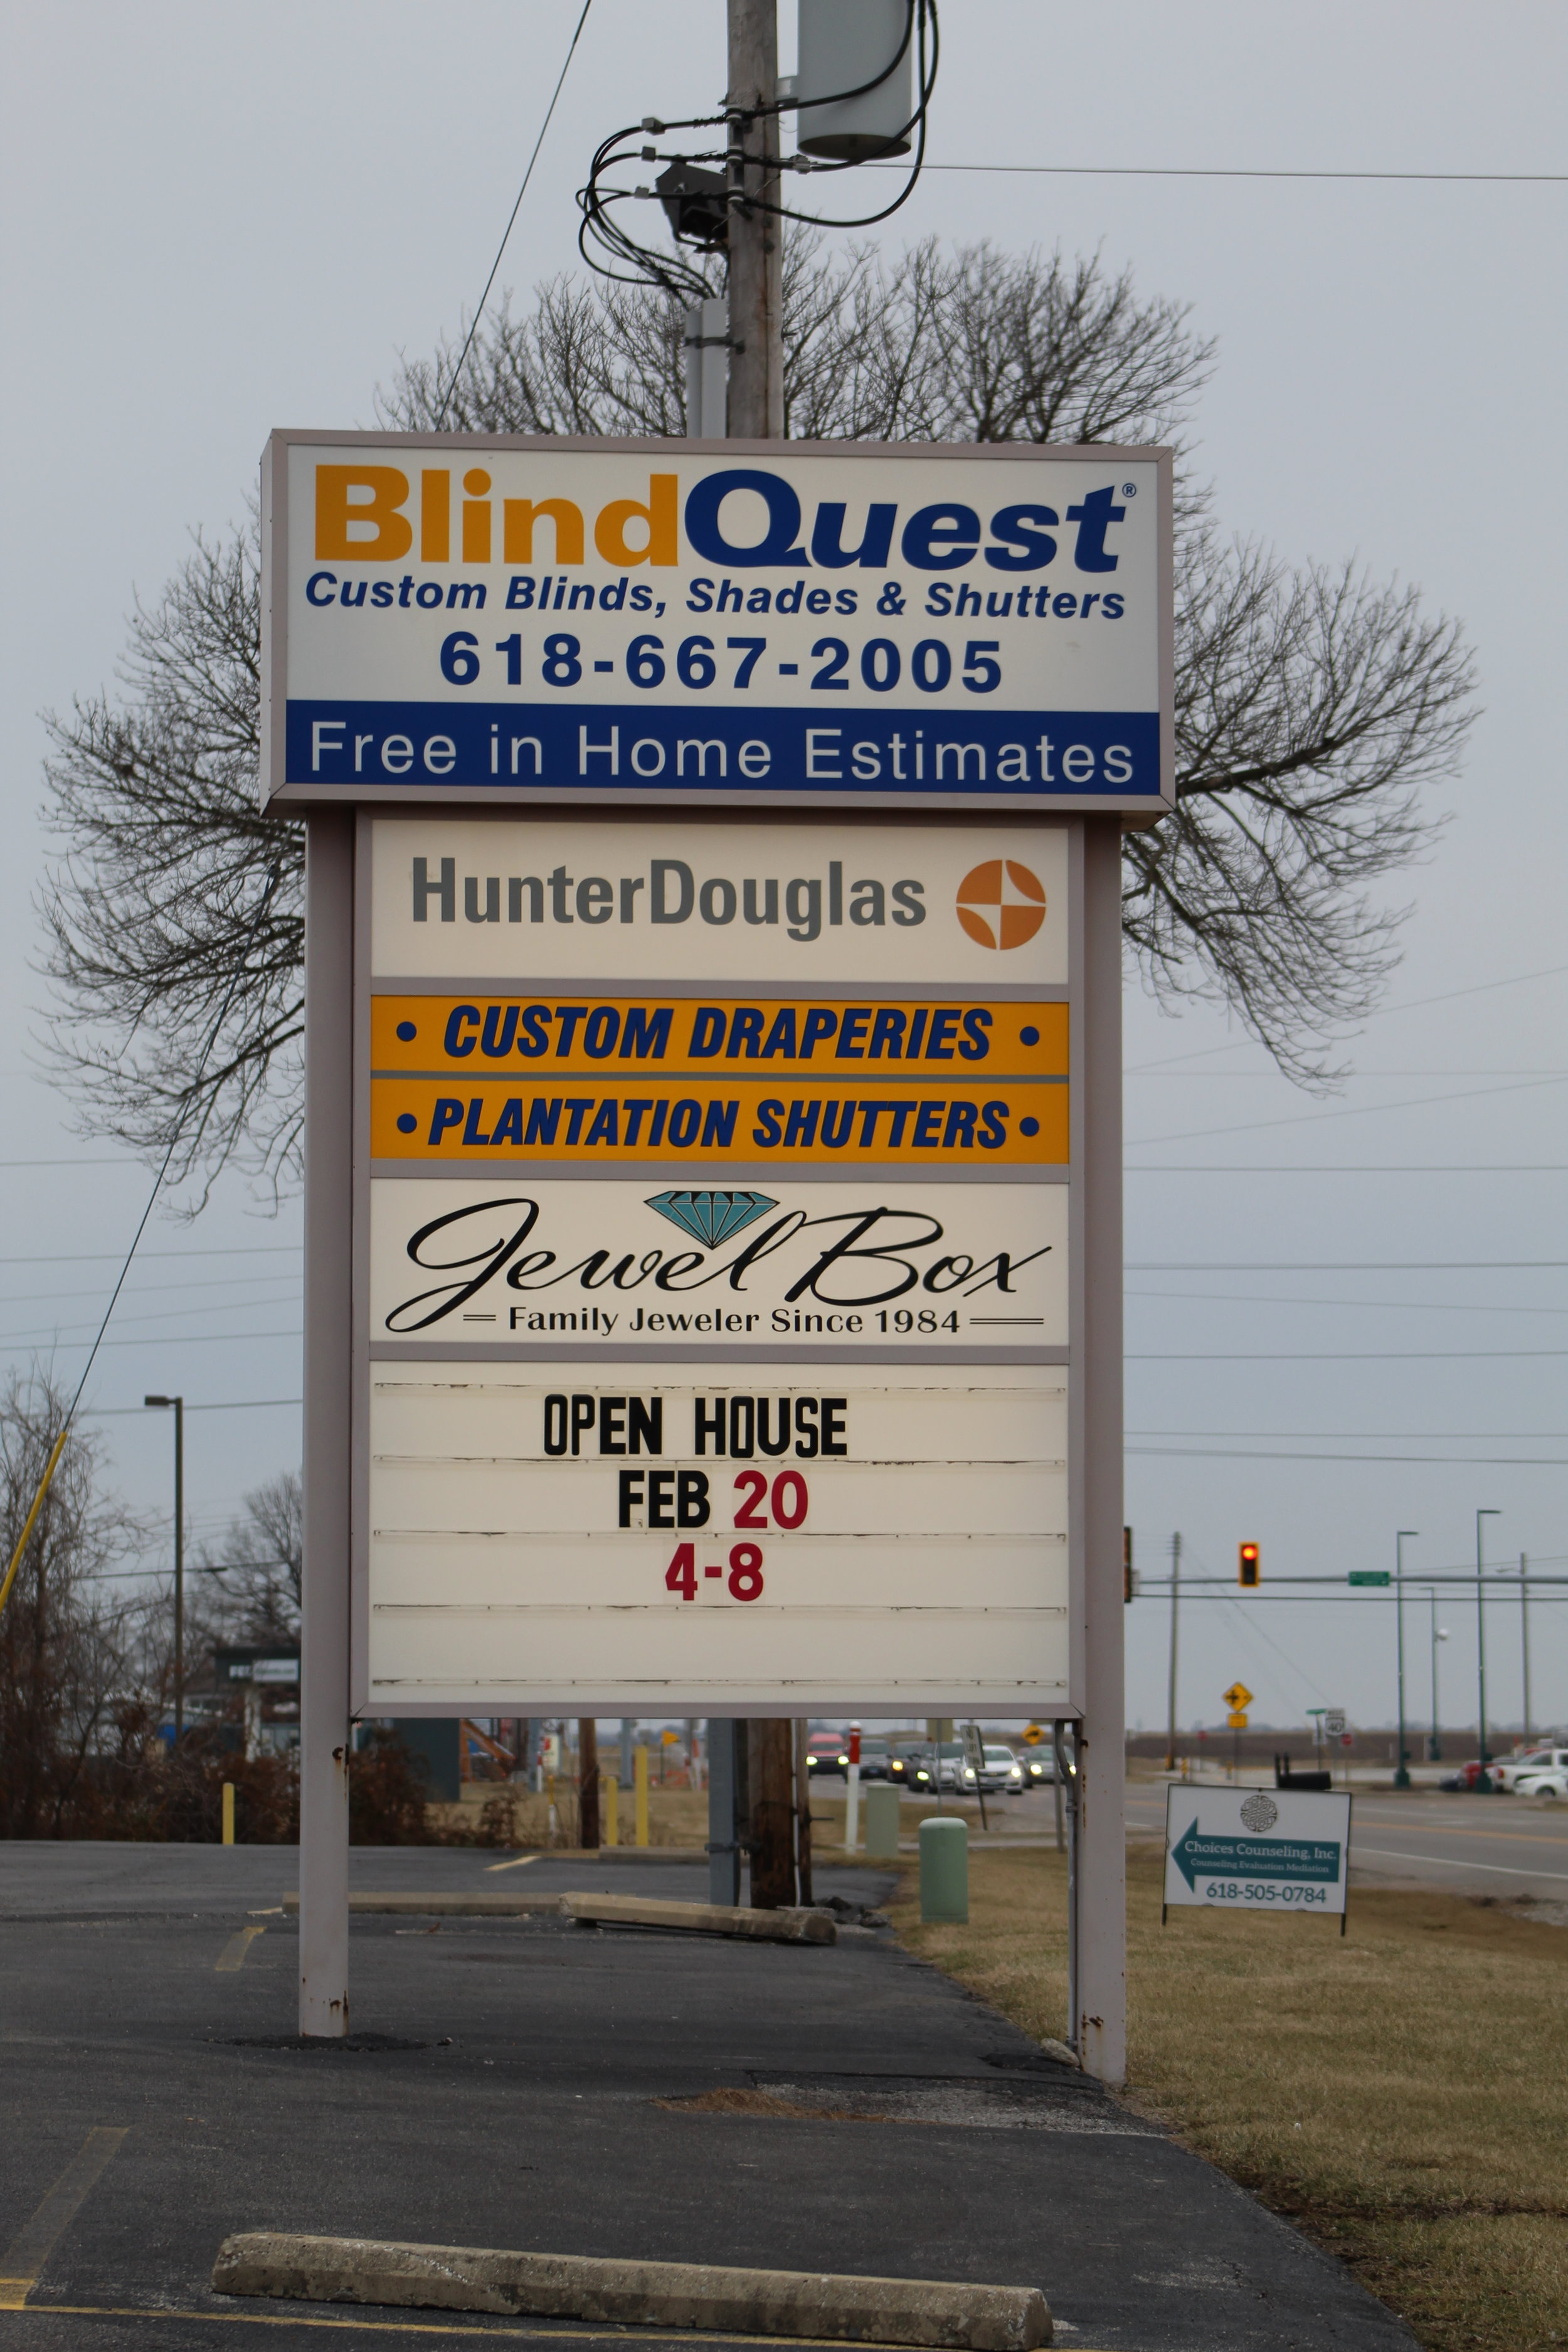 Blind Quest Sign In Front of Troy Office